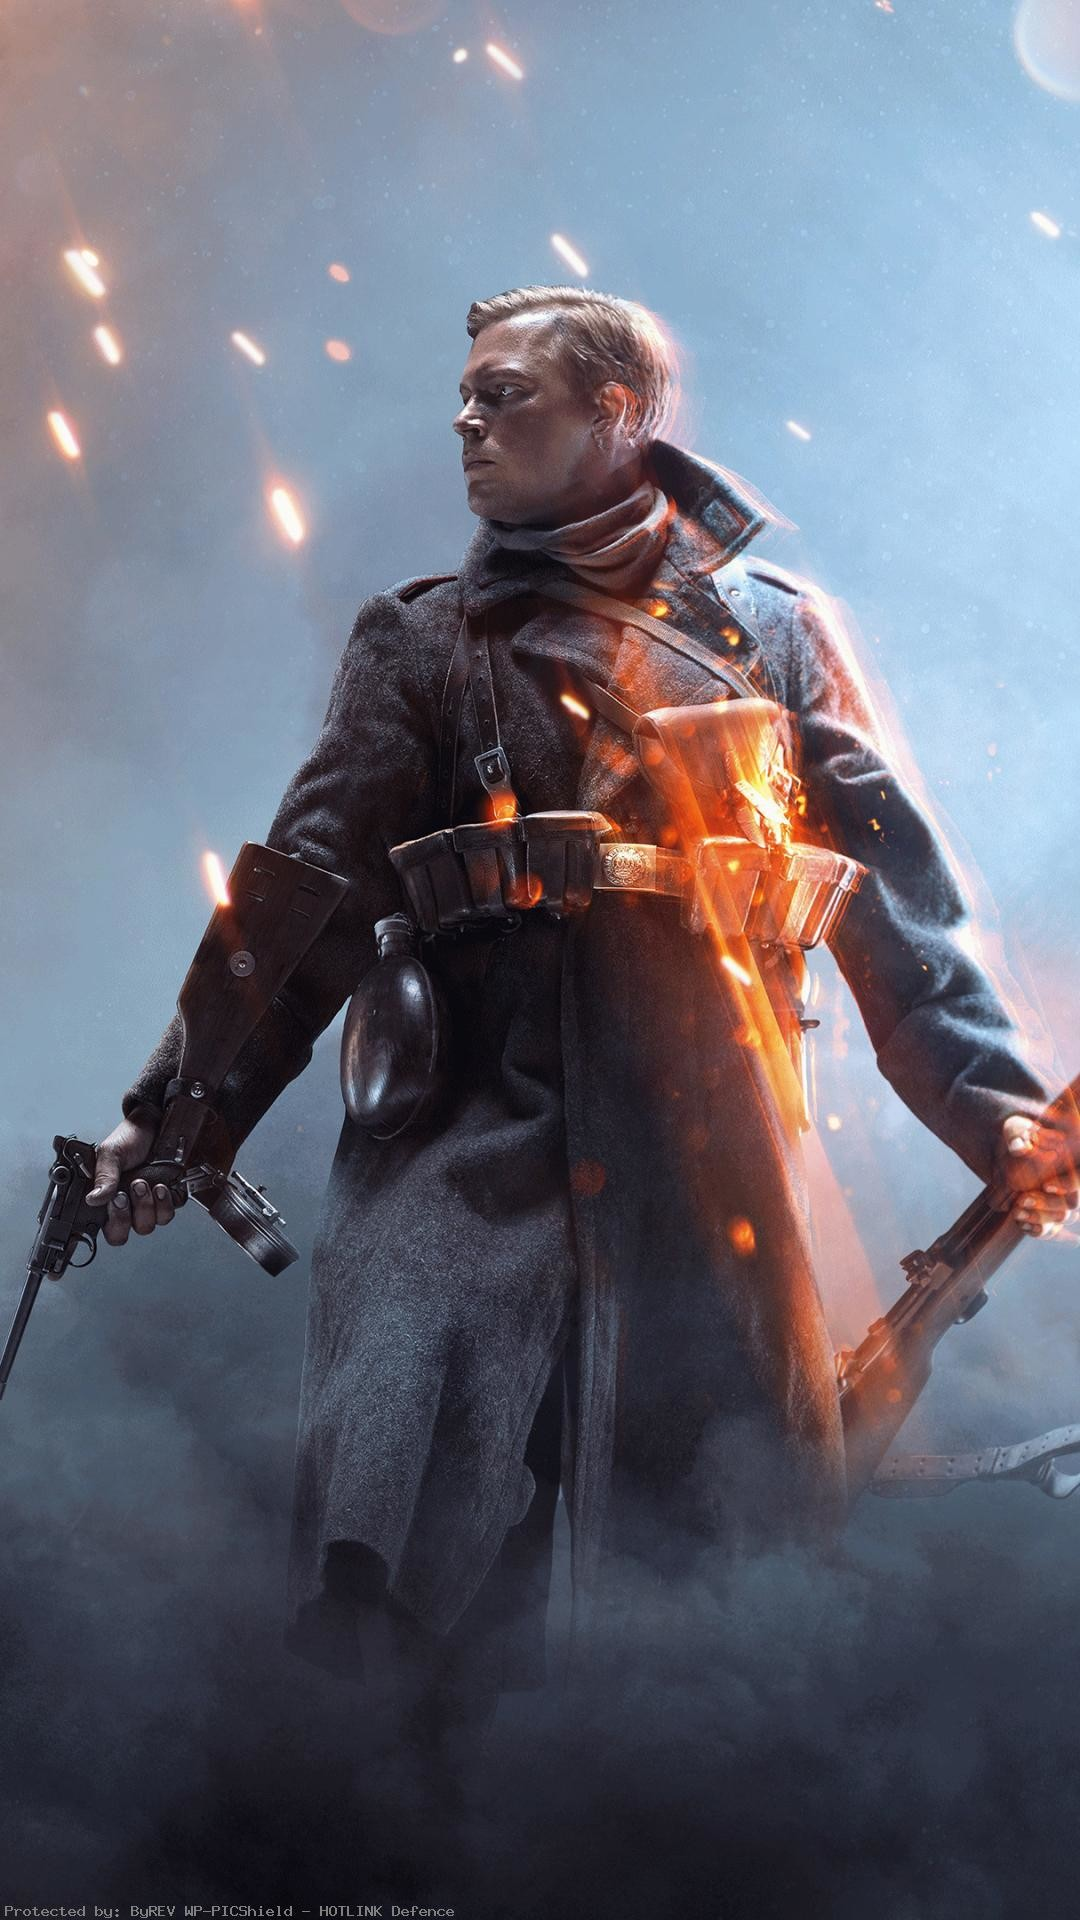 Download-this-iPhone-S-Video-Game-Battlefield-1080×1920-